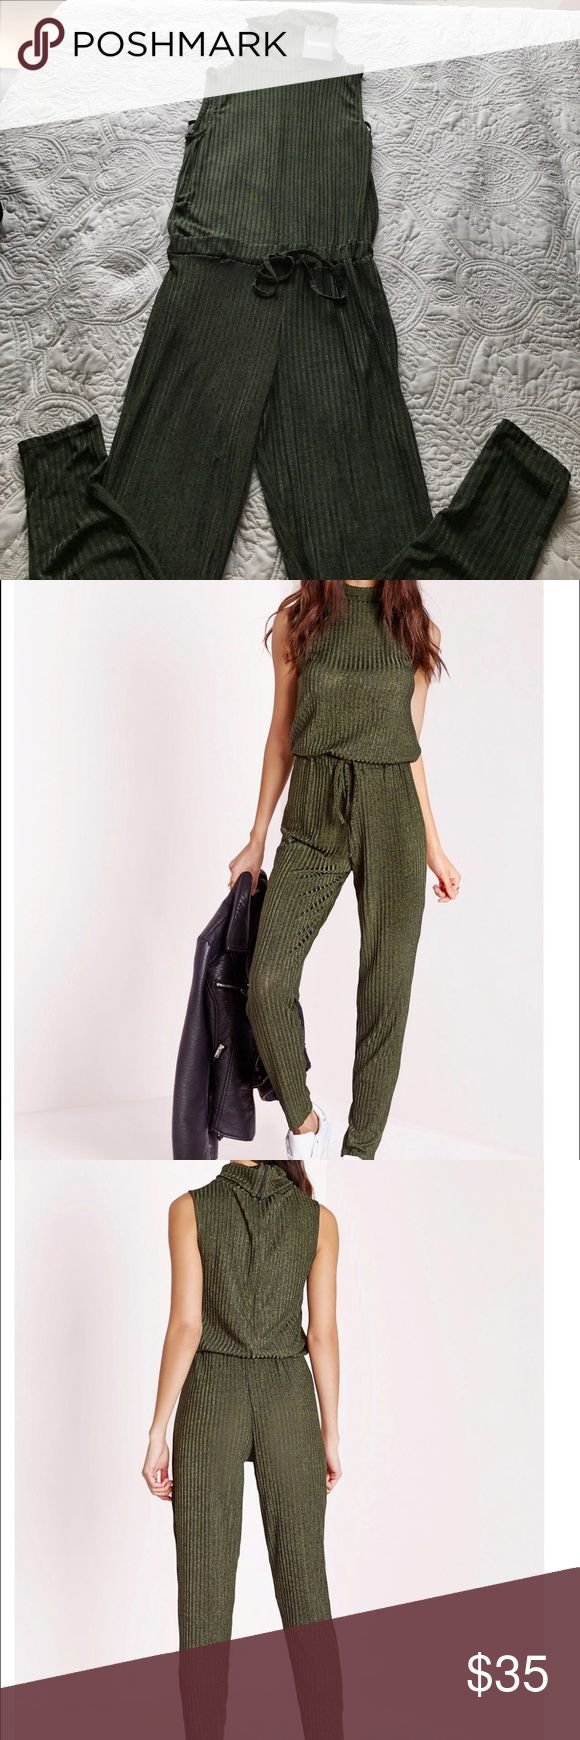 roll neck skinny rib jumpsuit khaki work some major cool day vibes this season in this seriously standout green jumpsuit. in an on point ribbed style this roll neck number with tie waist feature will give you a killer silhouette. team with casual trainers and shoulder bag for an effortlessly styled day look.    P.S has very small slit in the left side of the leg that can easily be sown. I'll attach a picture as well Misguided Other